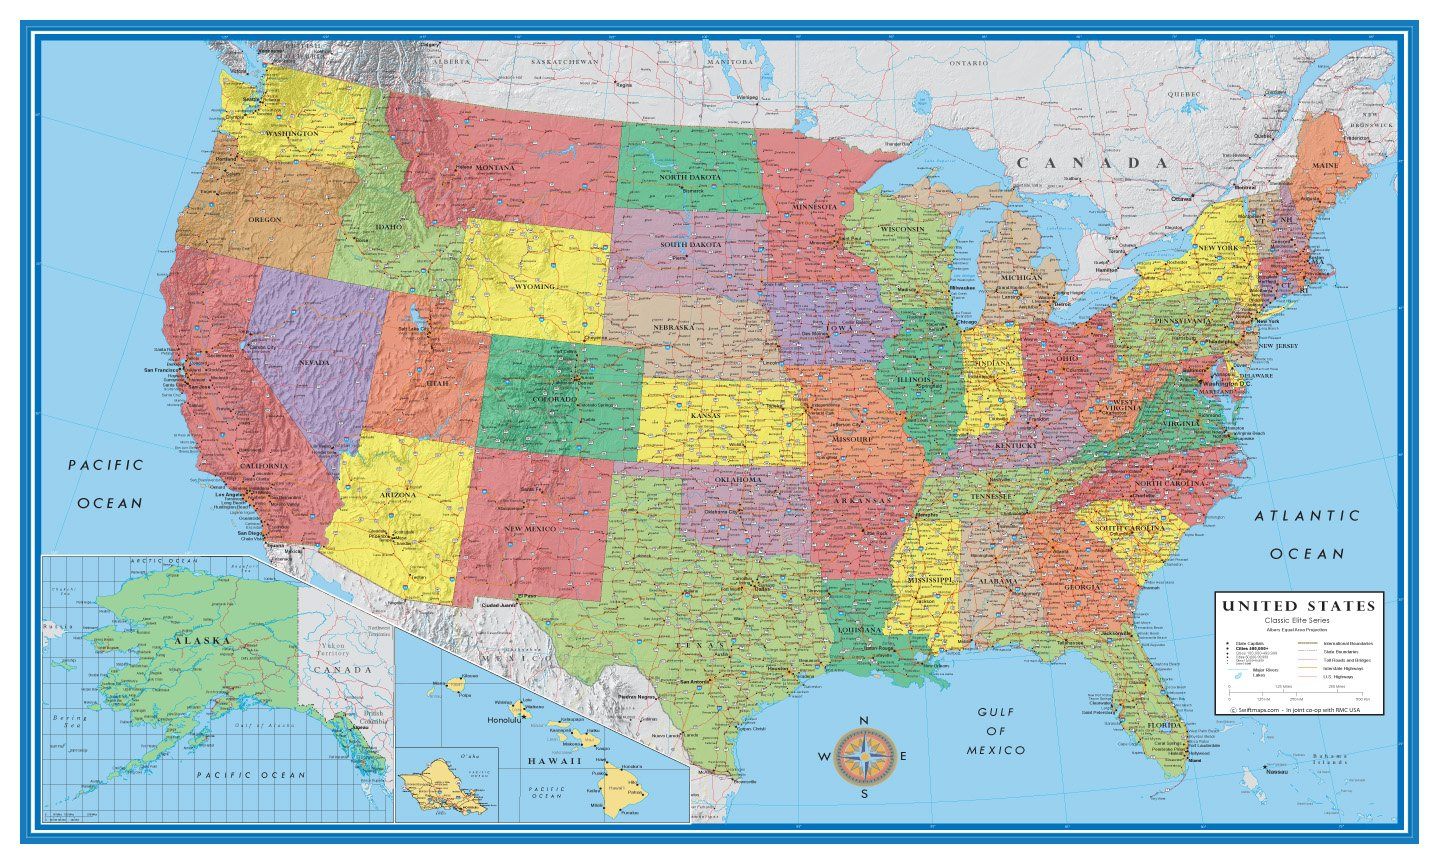 Amazoncom X United States USA Classic Elite Wall Map Mural - Us map and oceans